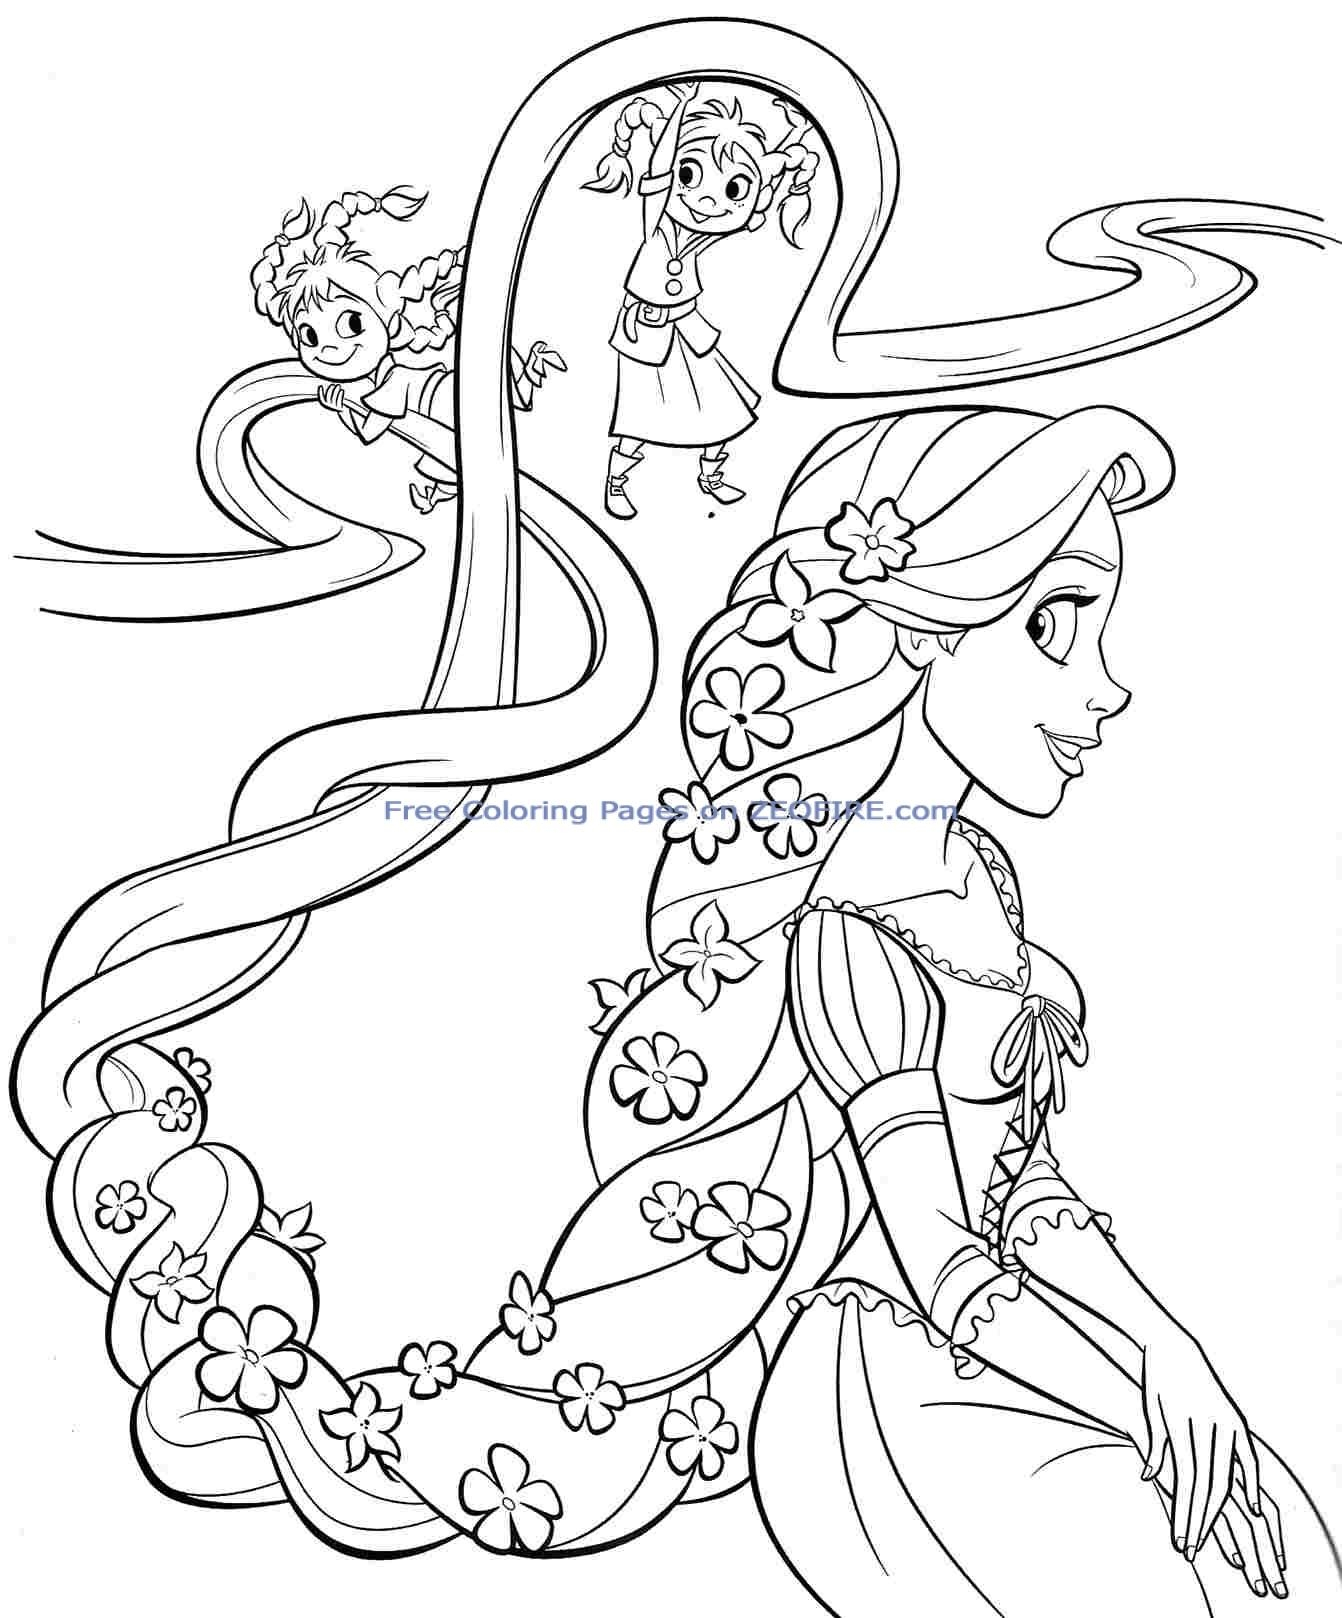 printable princess coloring pages - photo#29